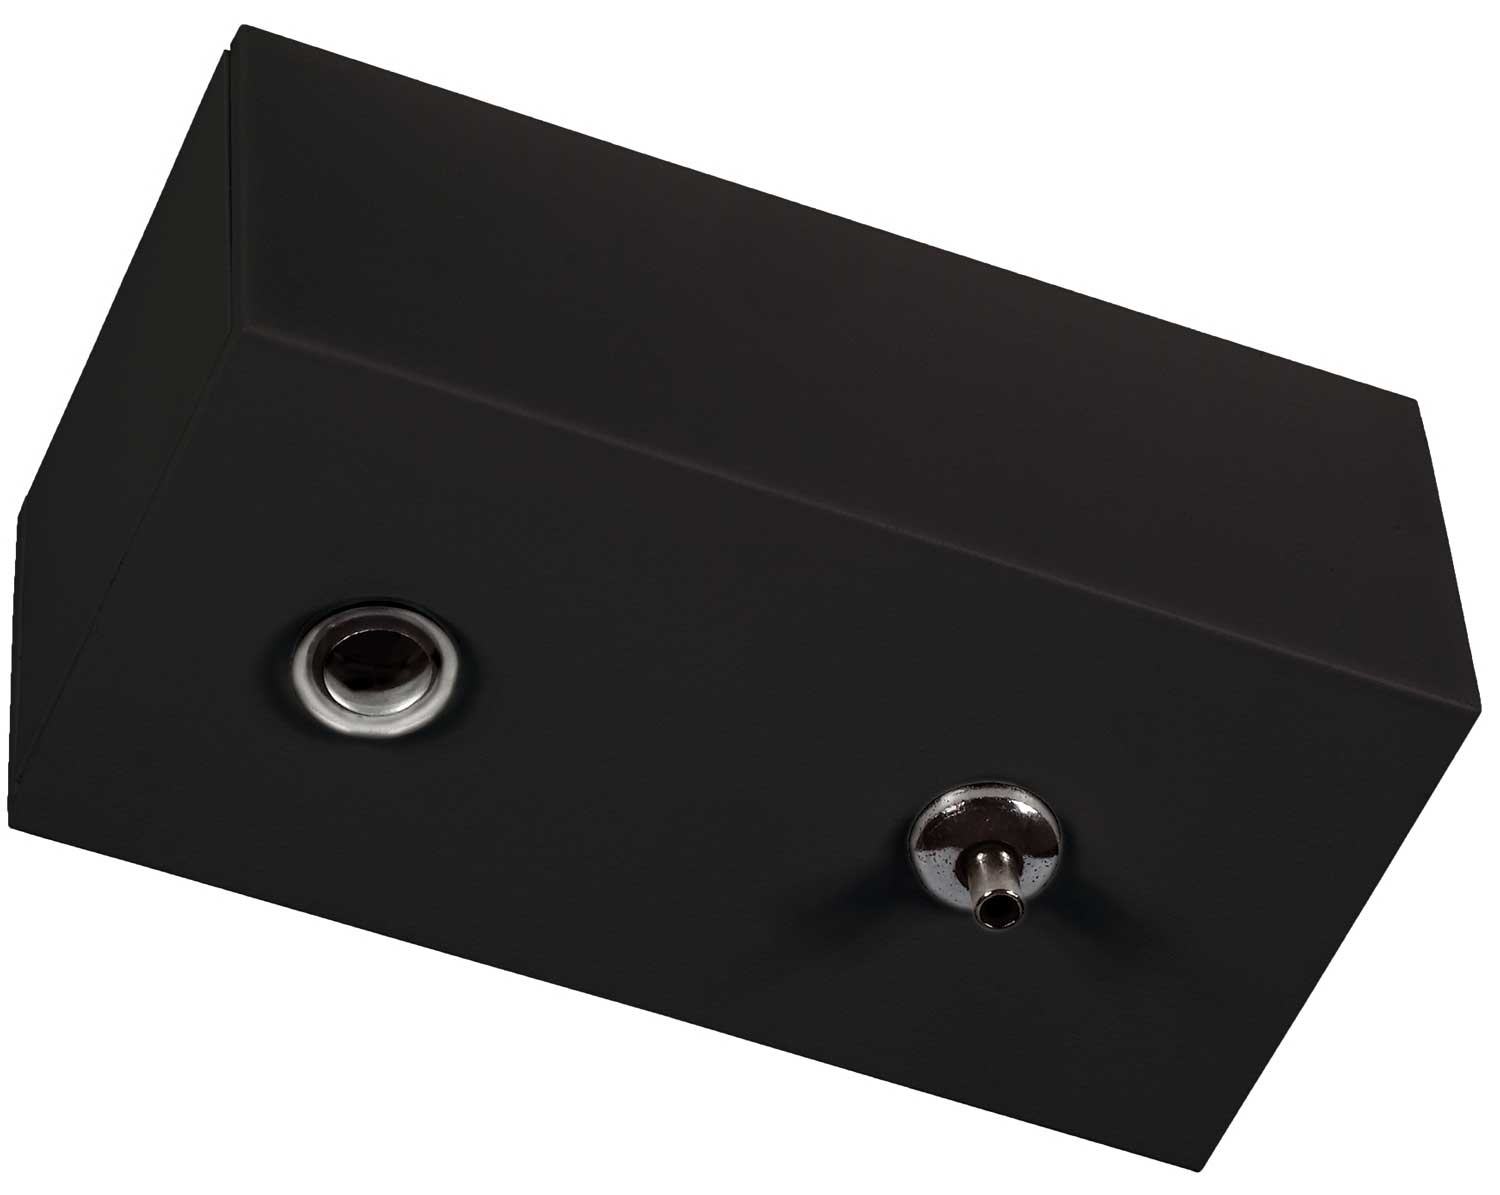 Xline Ceiling Junction Box Black Uni Bright Electrical Wiring On Metal